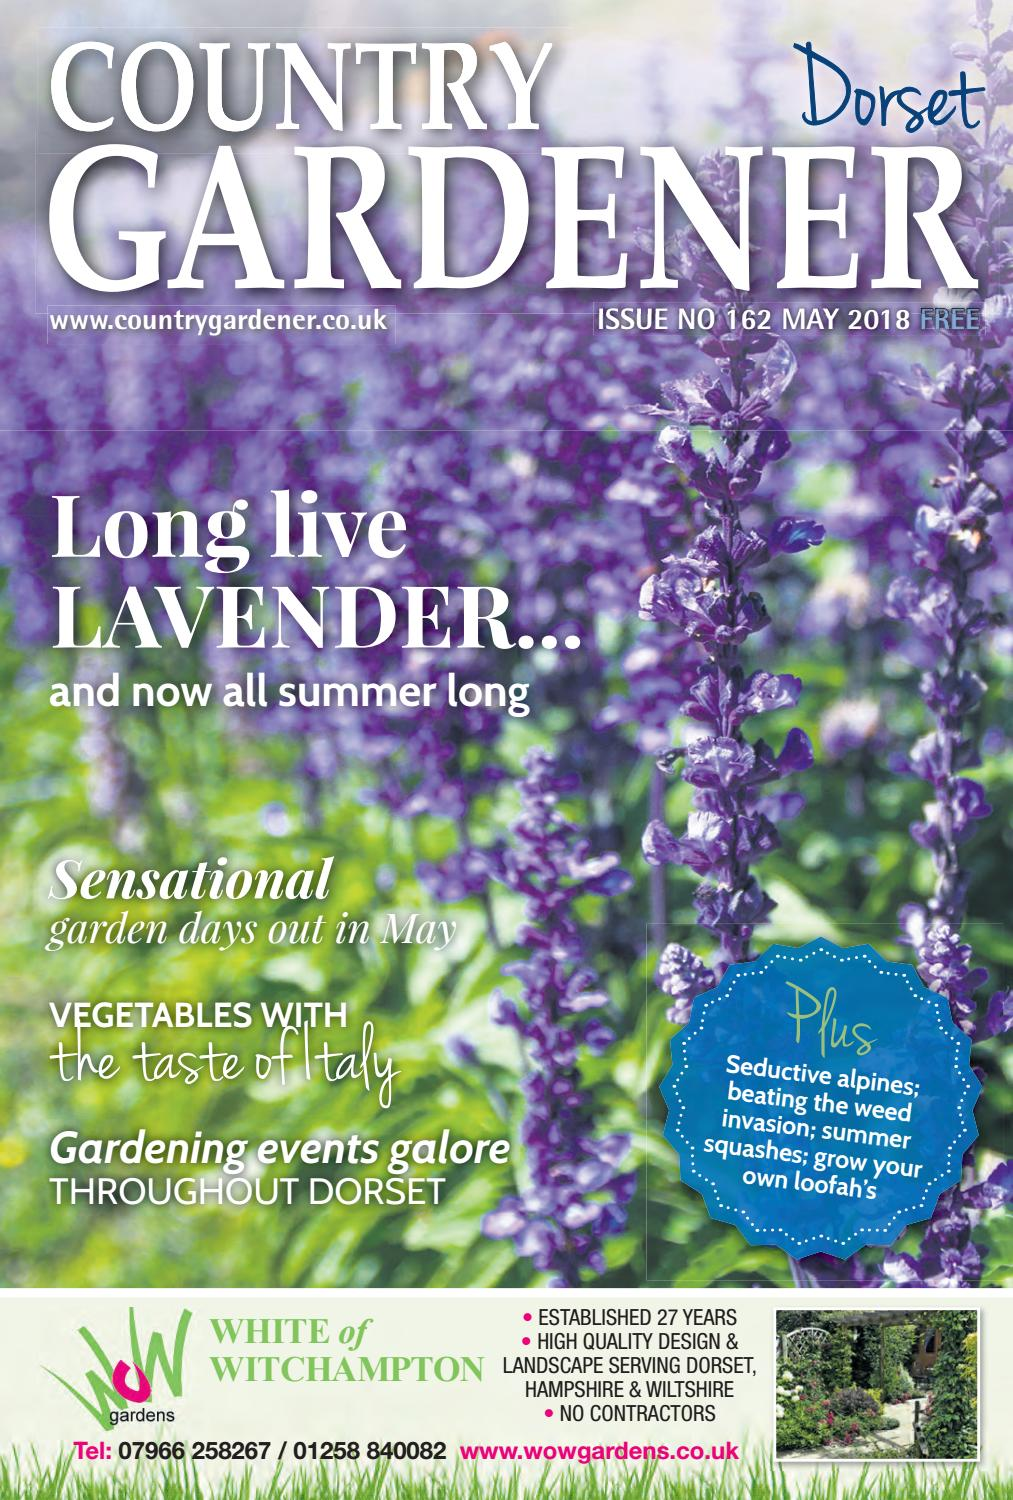 Dorset Country Gardener May 2018 By Country Gardener Issuu - Garden Furniture Clearance Company Dorset